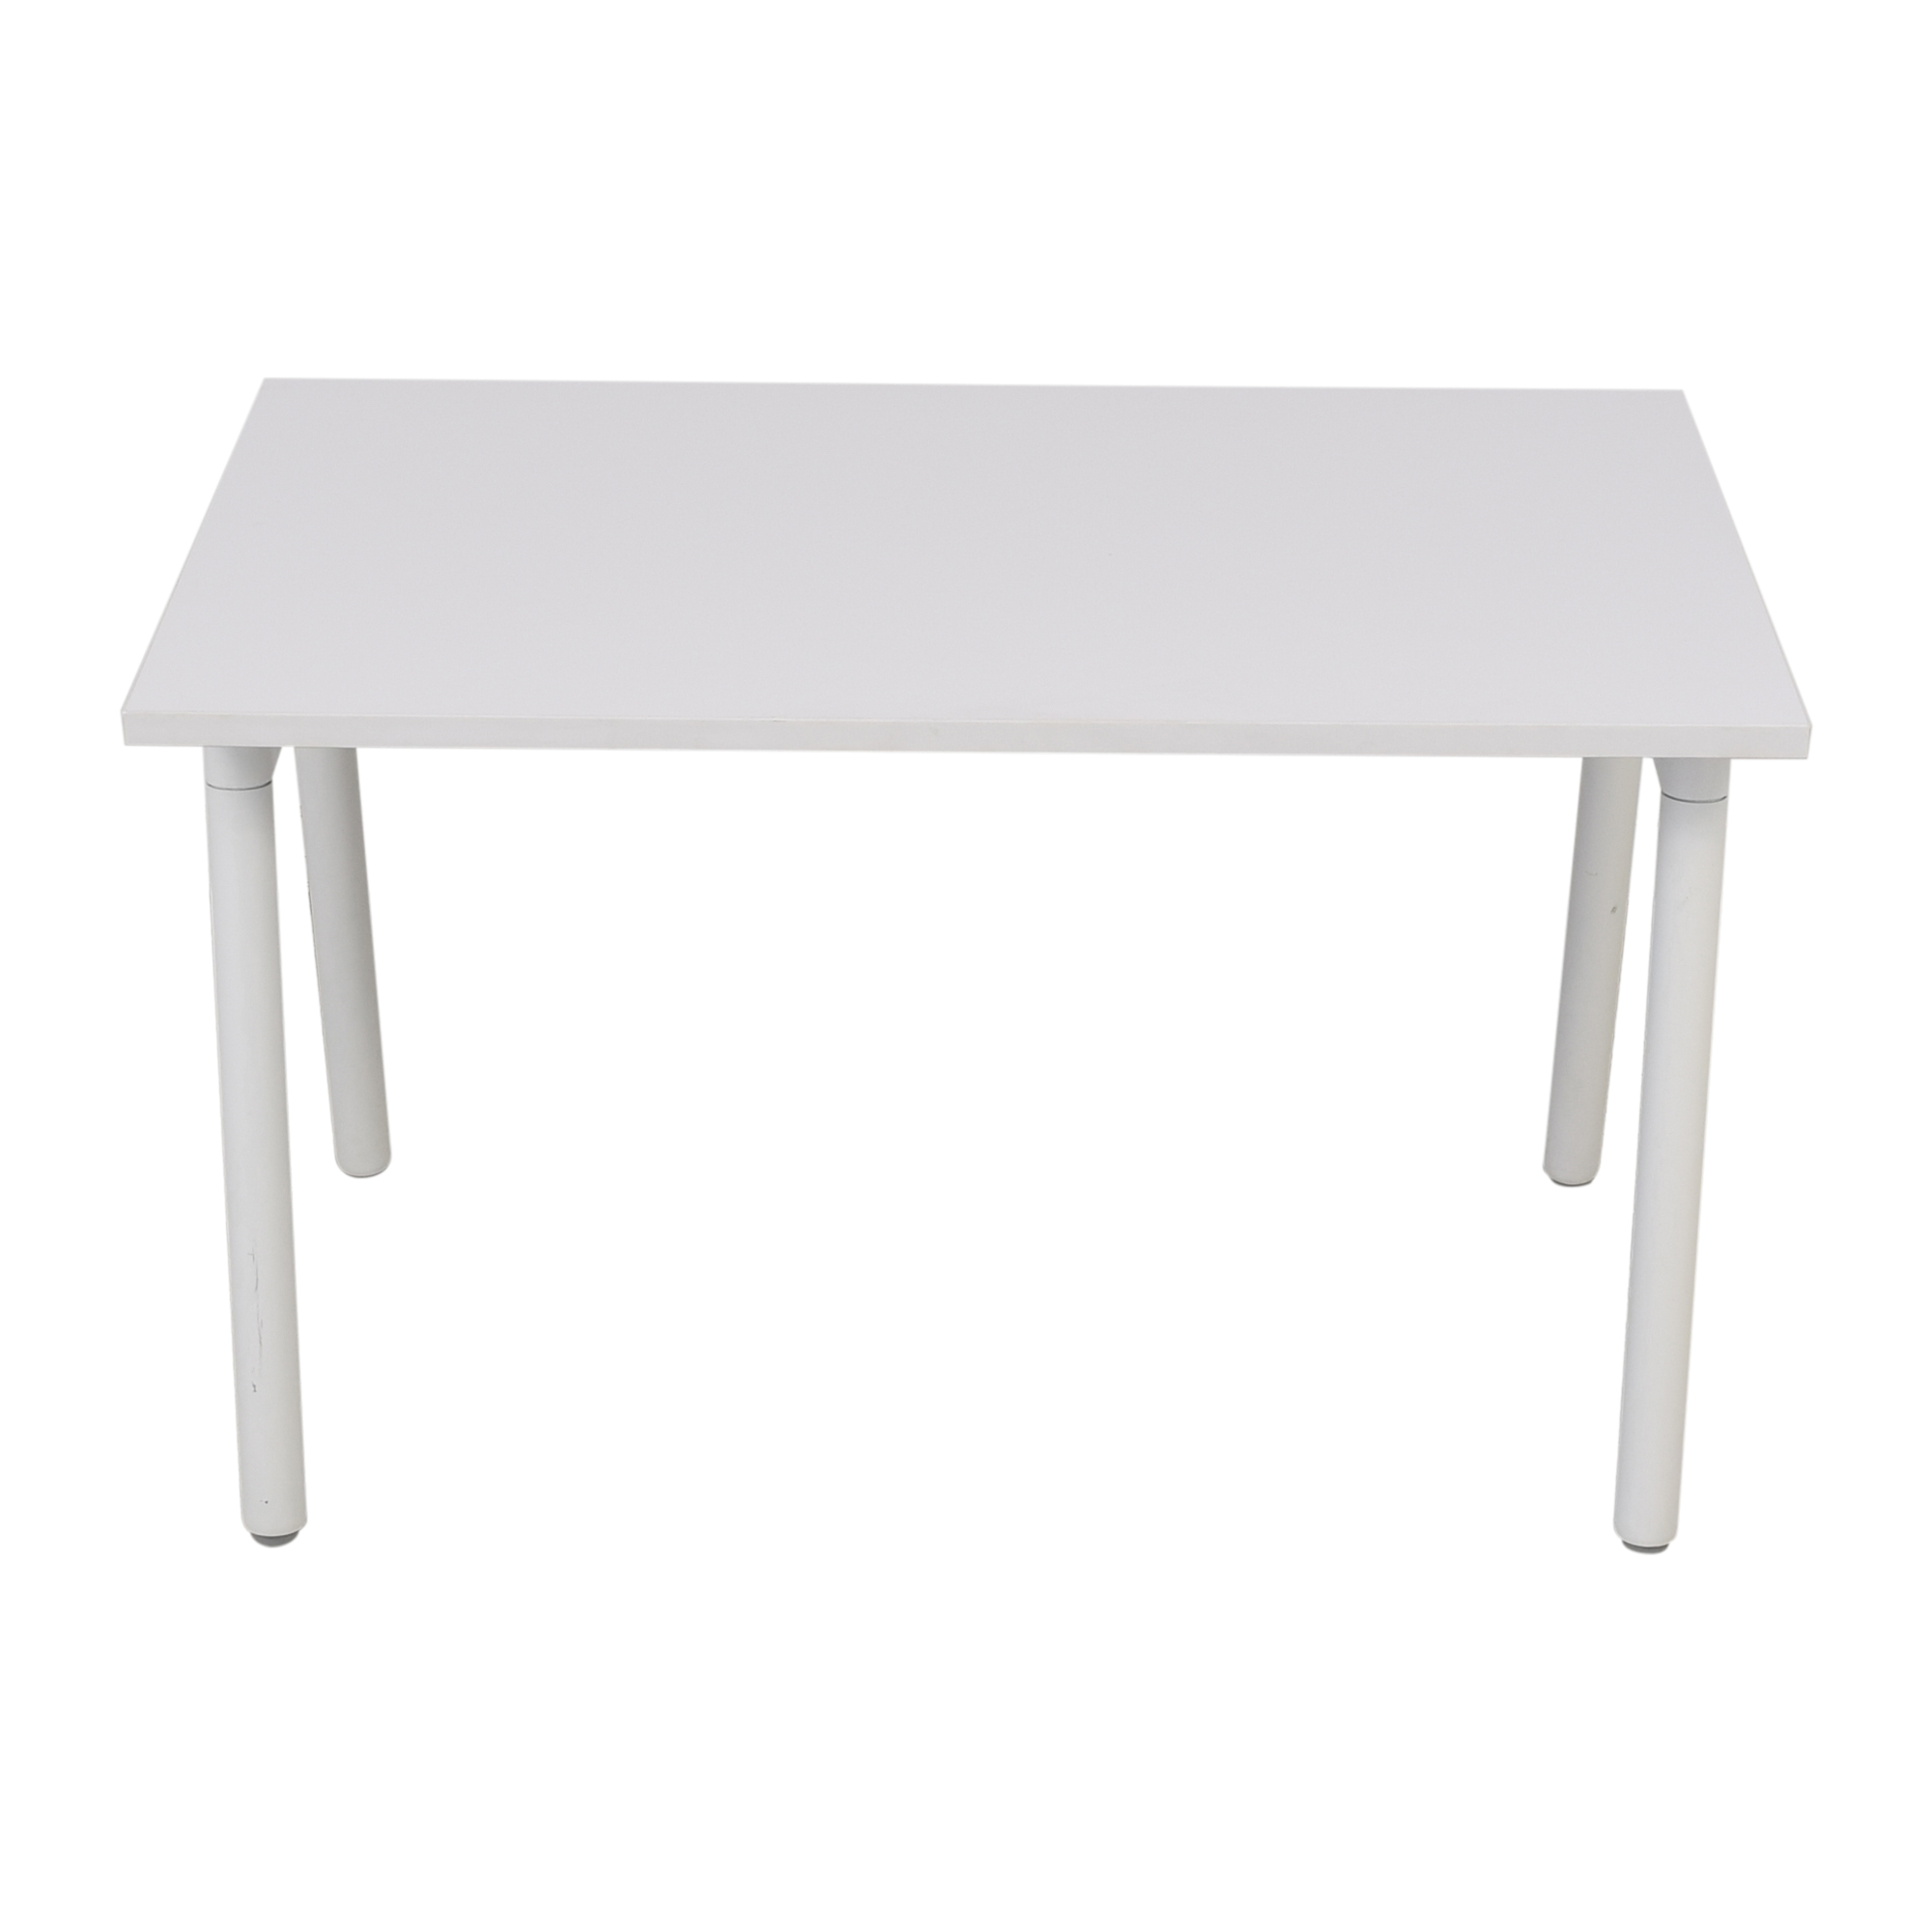 Poppin Poppin Series A Single Desk for sale